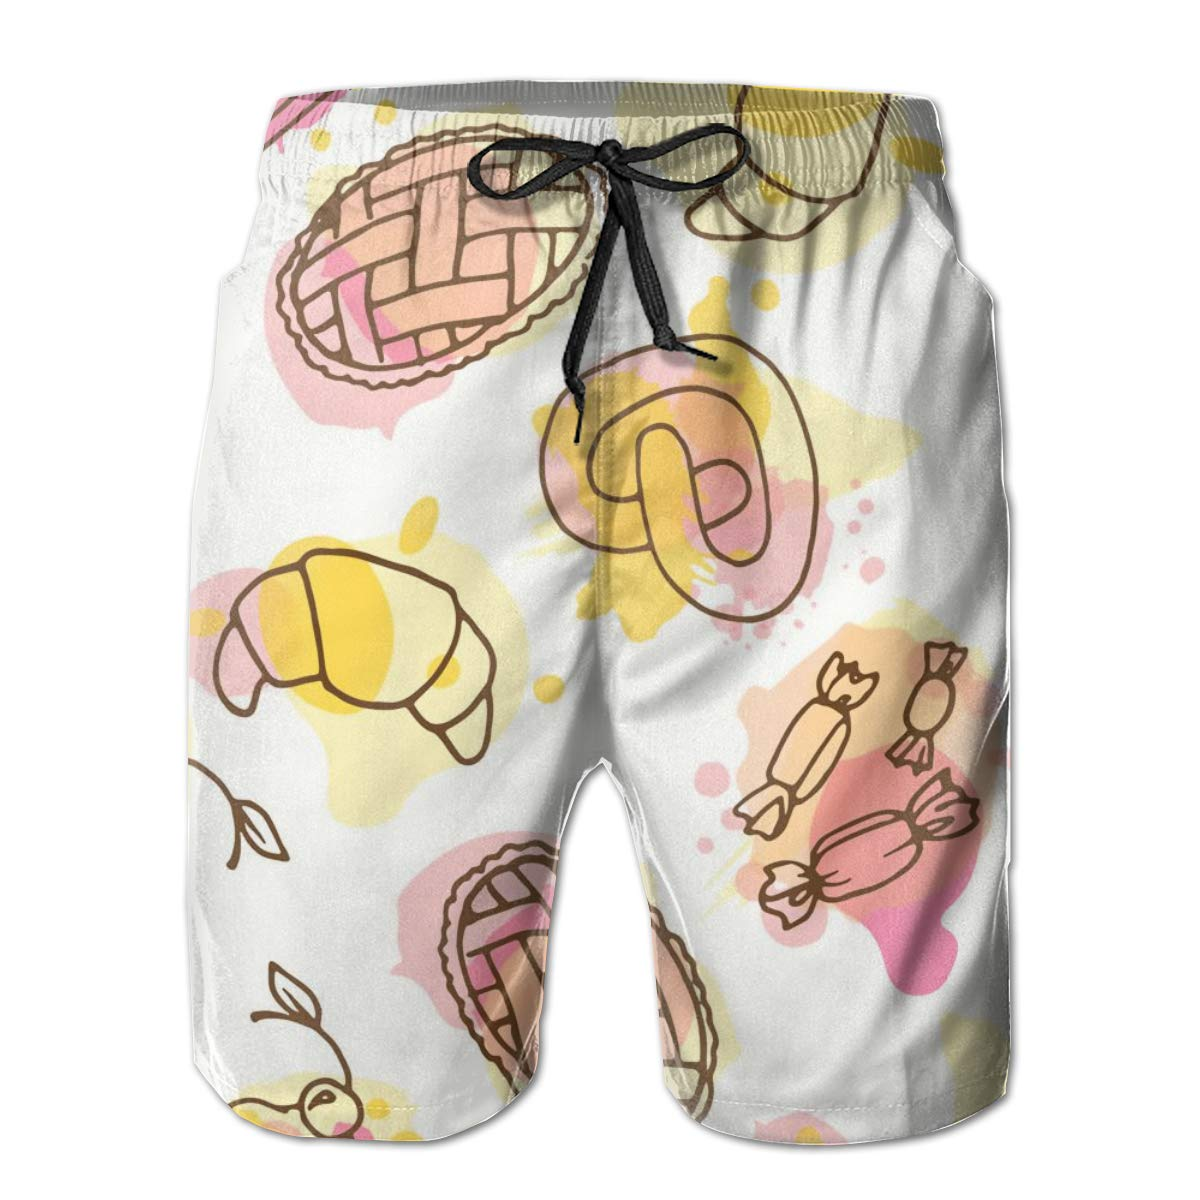 SARA NELL Mens Shorts Fruits Pattern Hand Drawn Quick Dry Swim Trunks Beach Board Shorts White